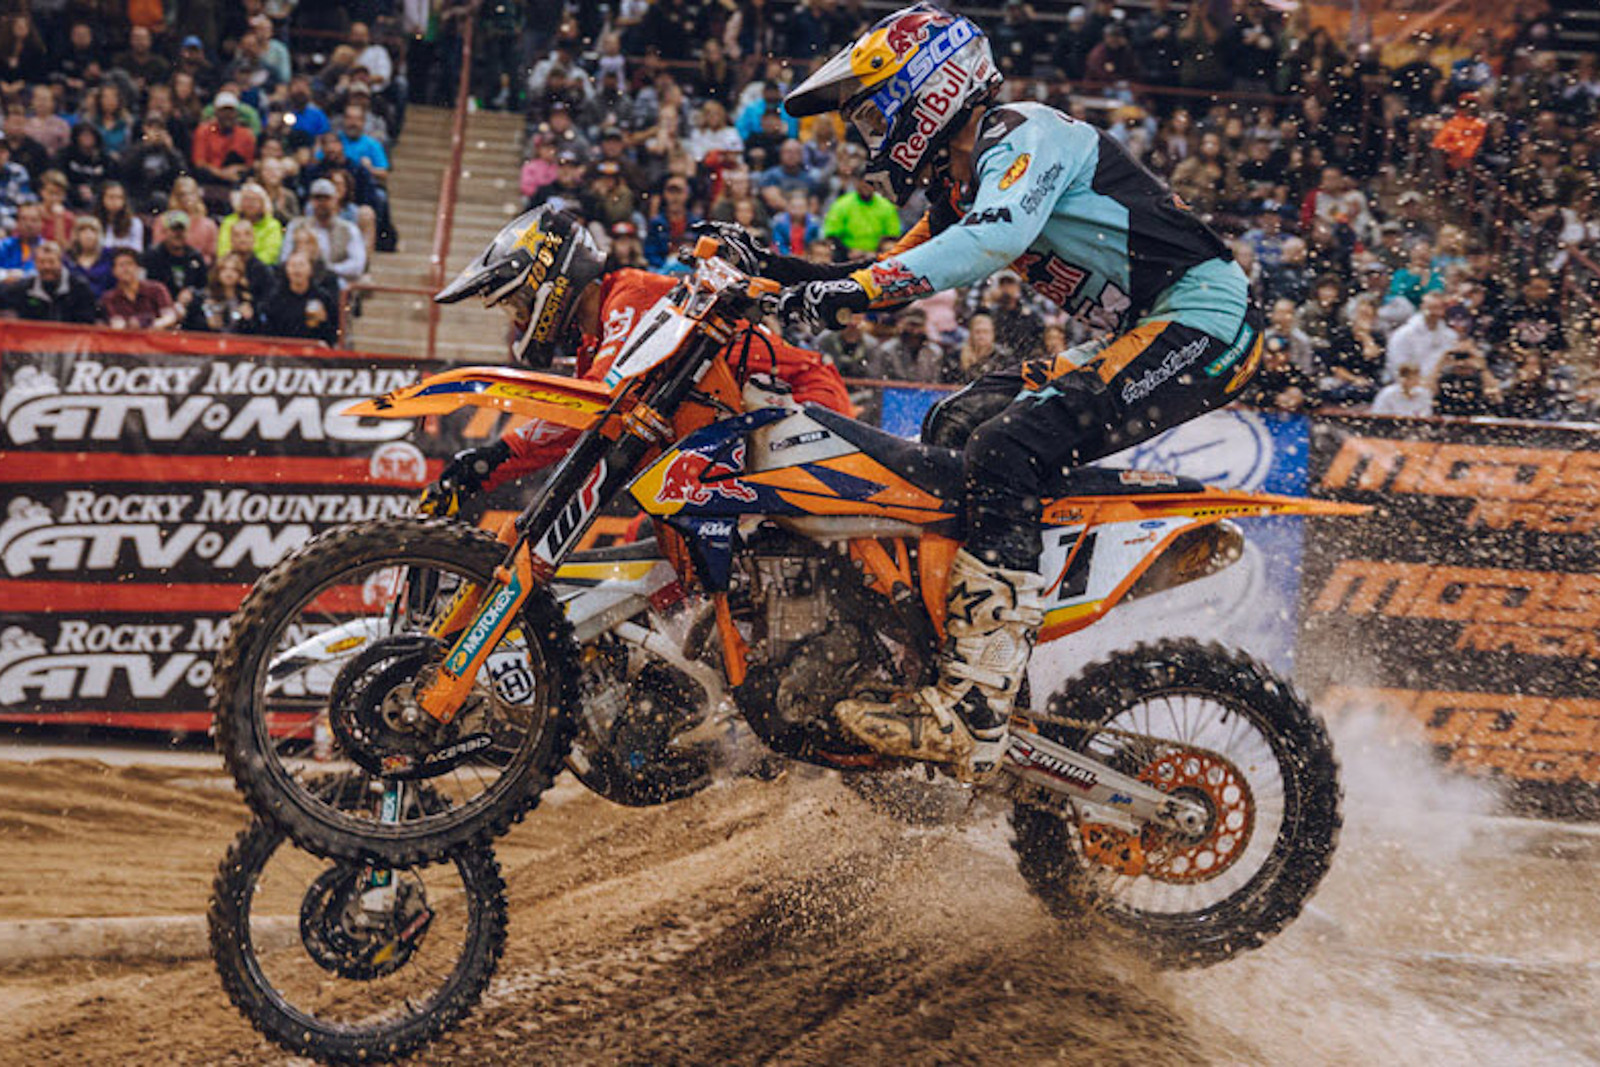 2019 AMA EnduroCross Series cancelled